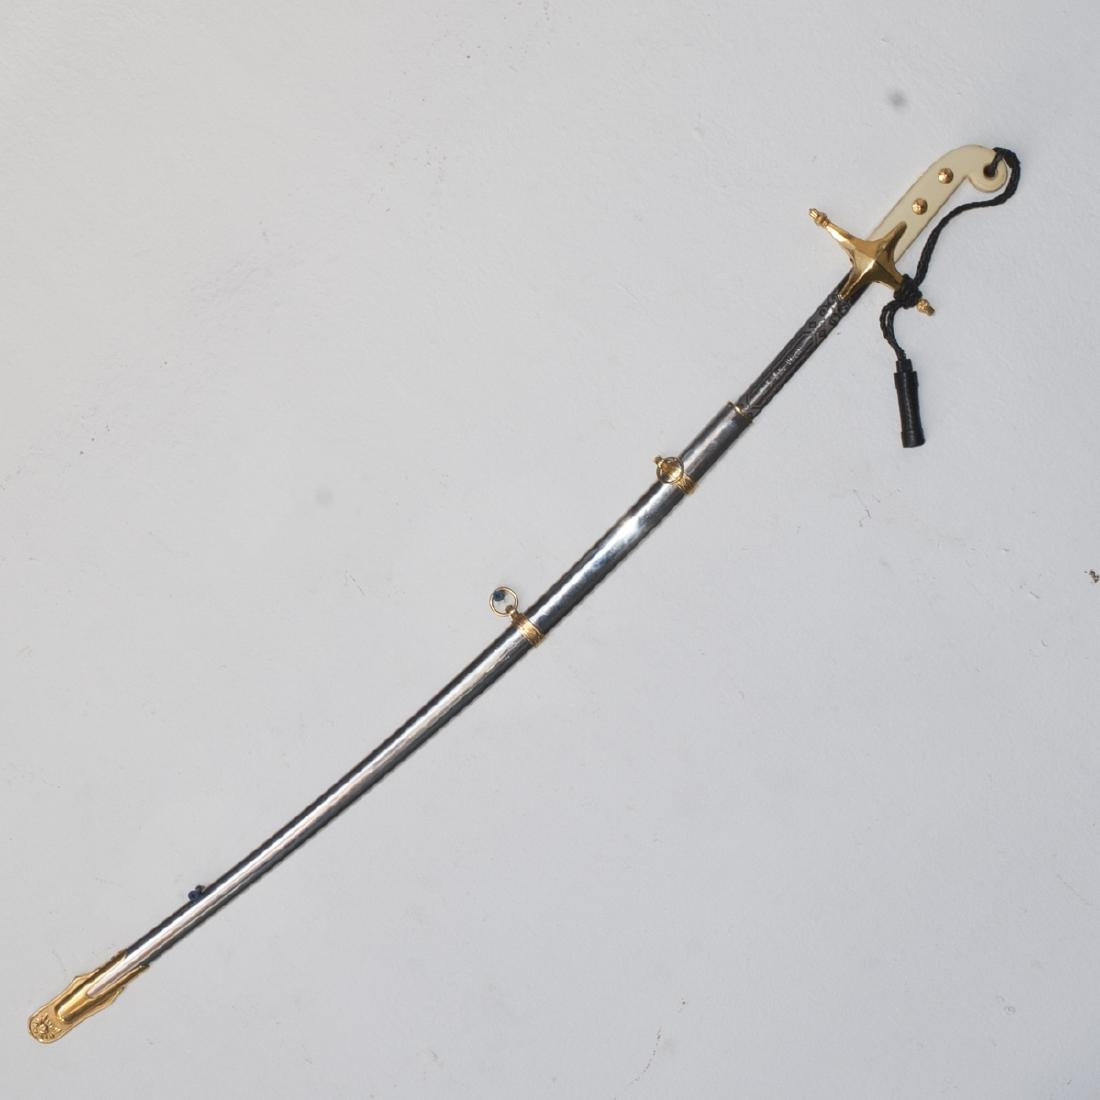 USMC Ceremonial Dress Sword & Scabbard